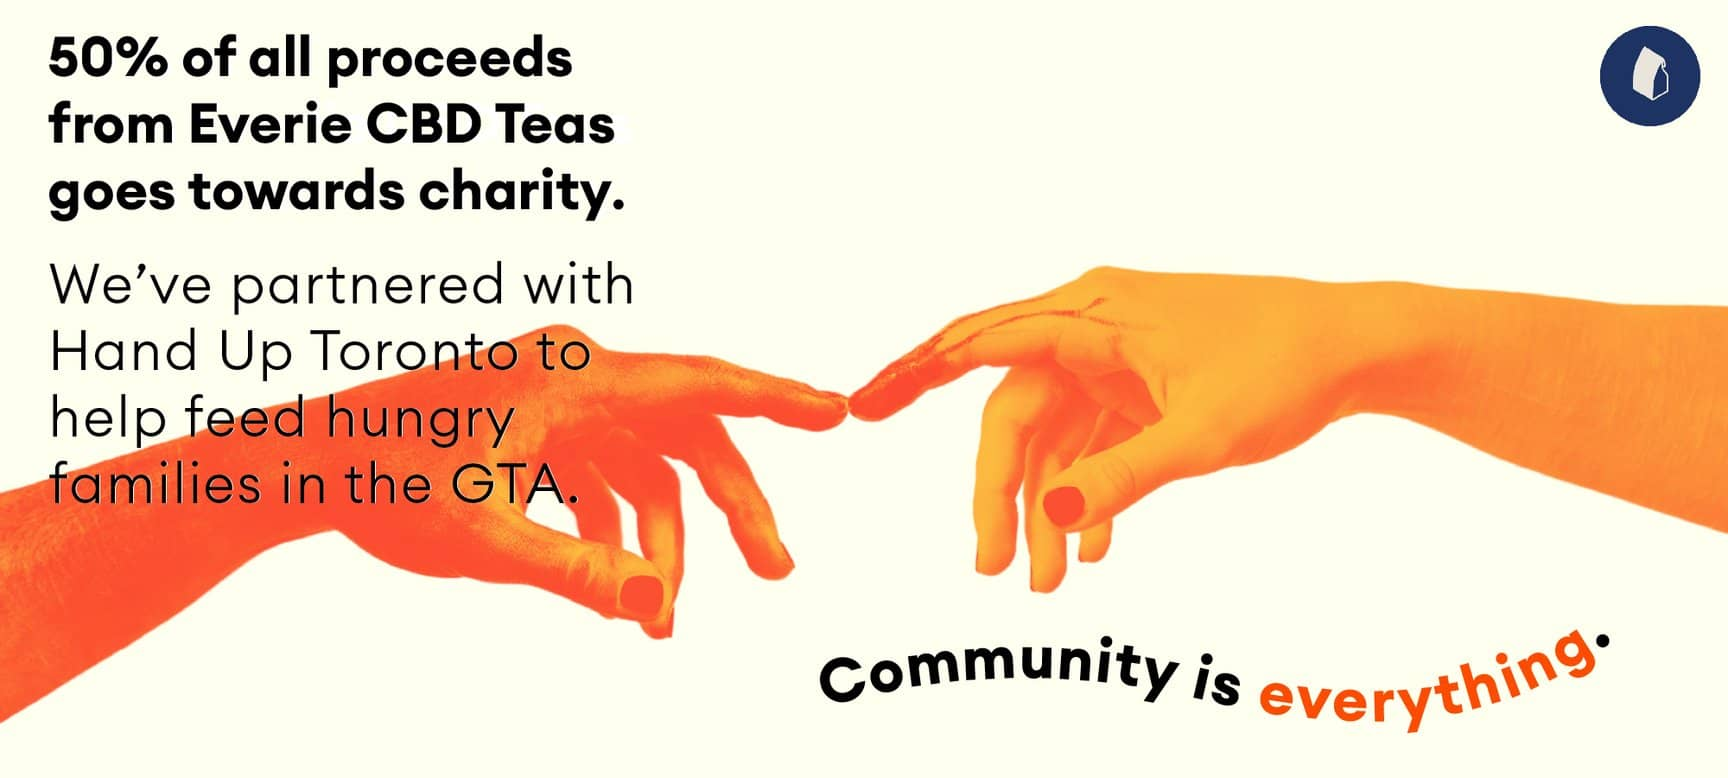 image of two orange and yellow hands touching fingers. White background and the text says 50% of all proceeds from Every CBD Teas goes towards charity. We've partnered with Hand Up Toronto to help feed hungry families in the GTA. Community is everything